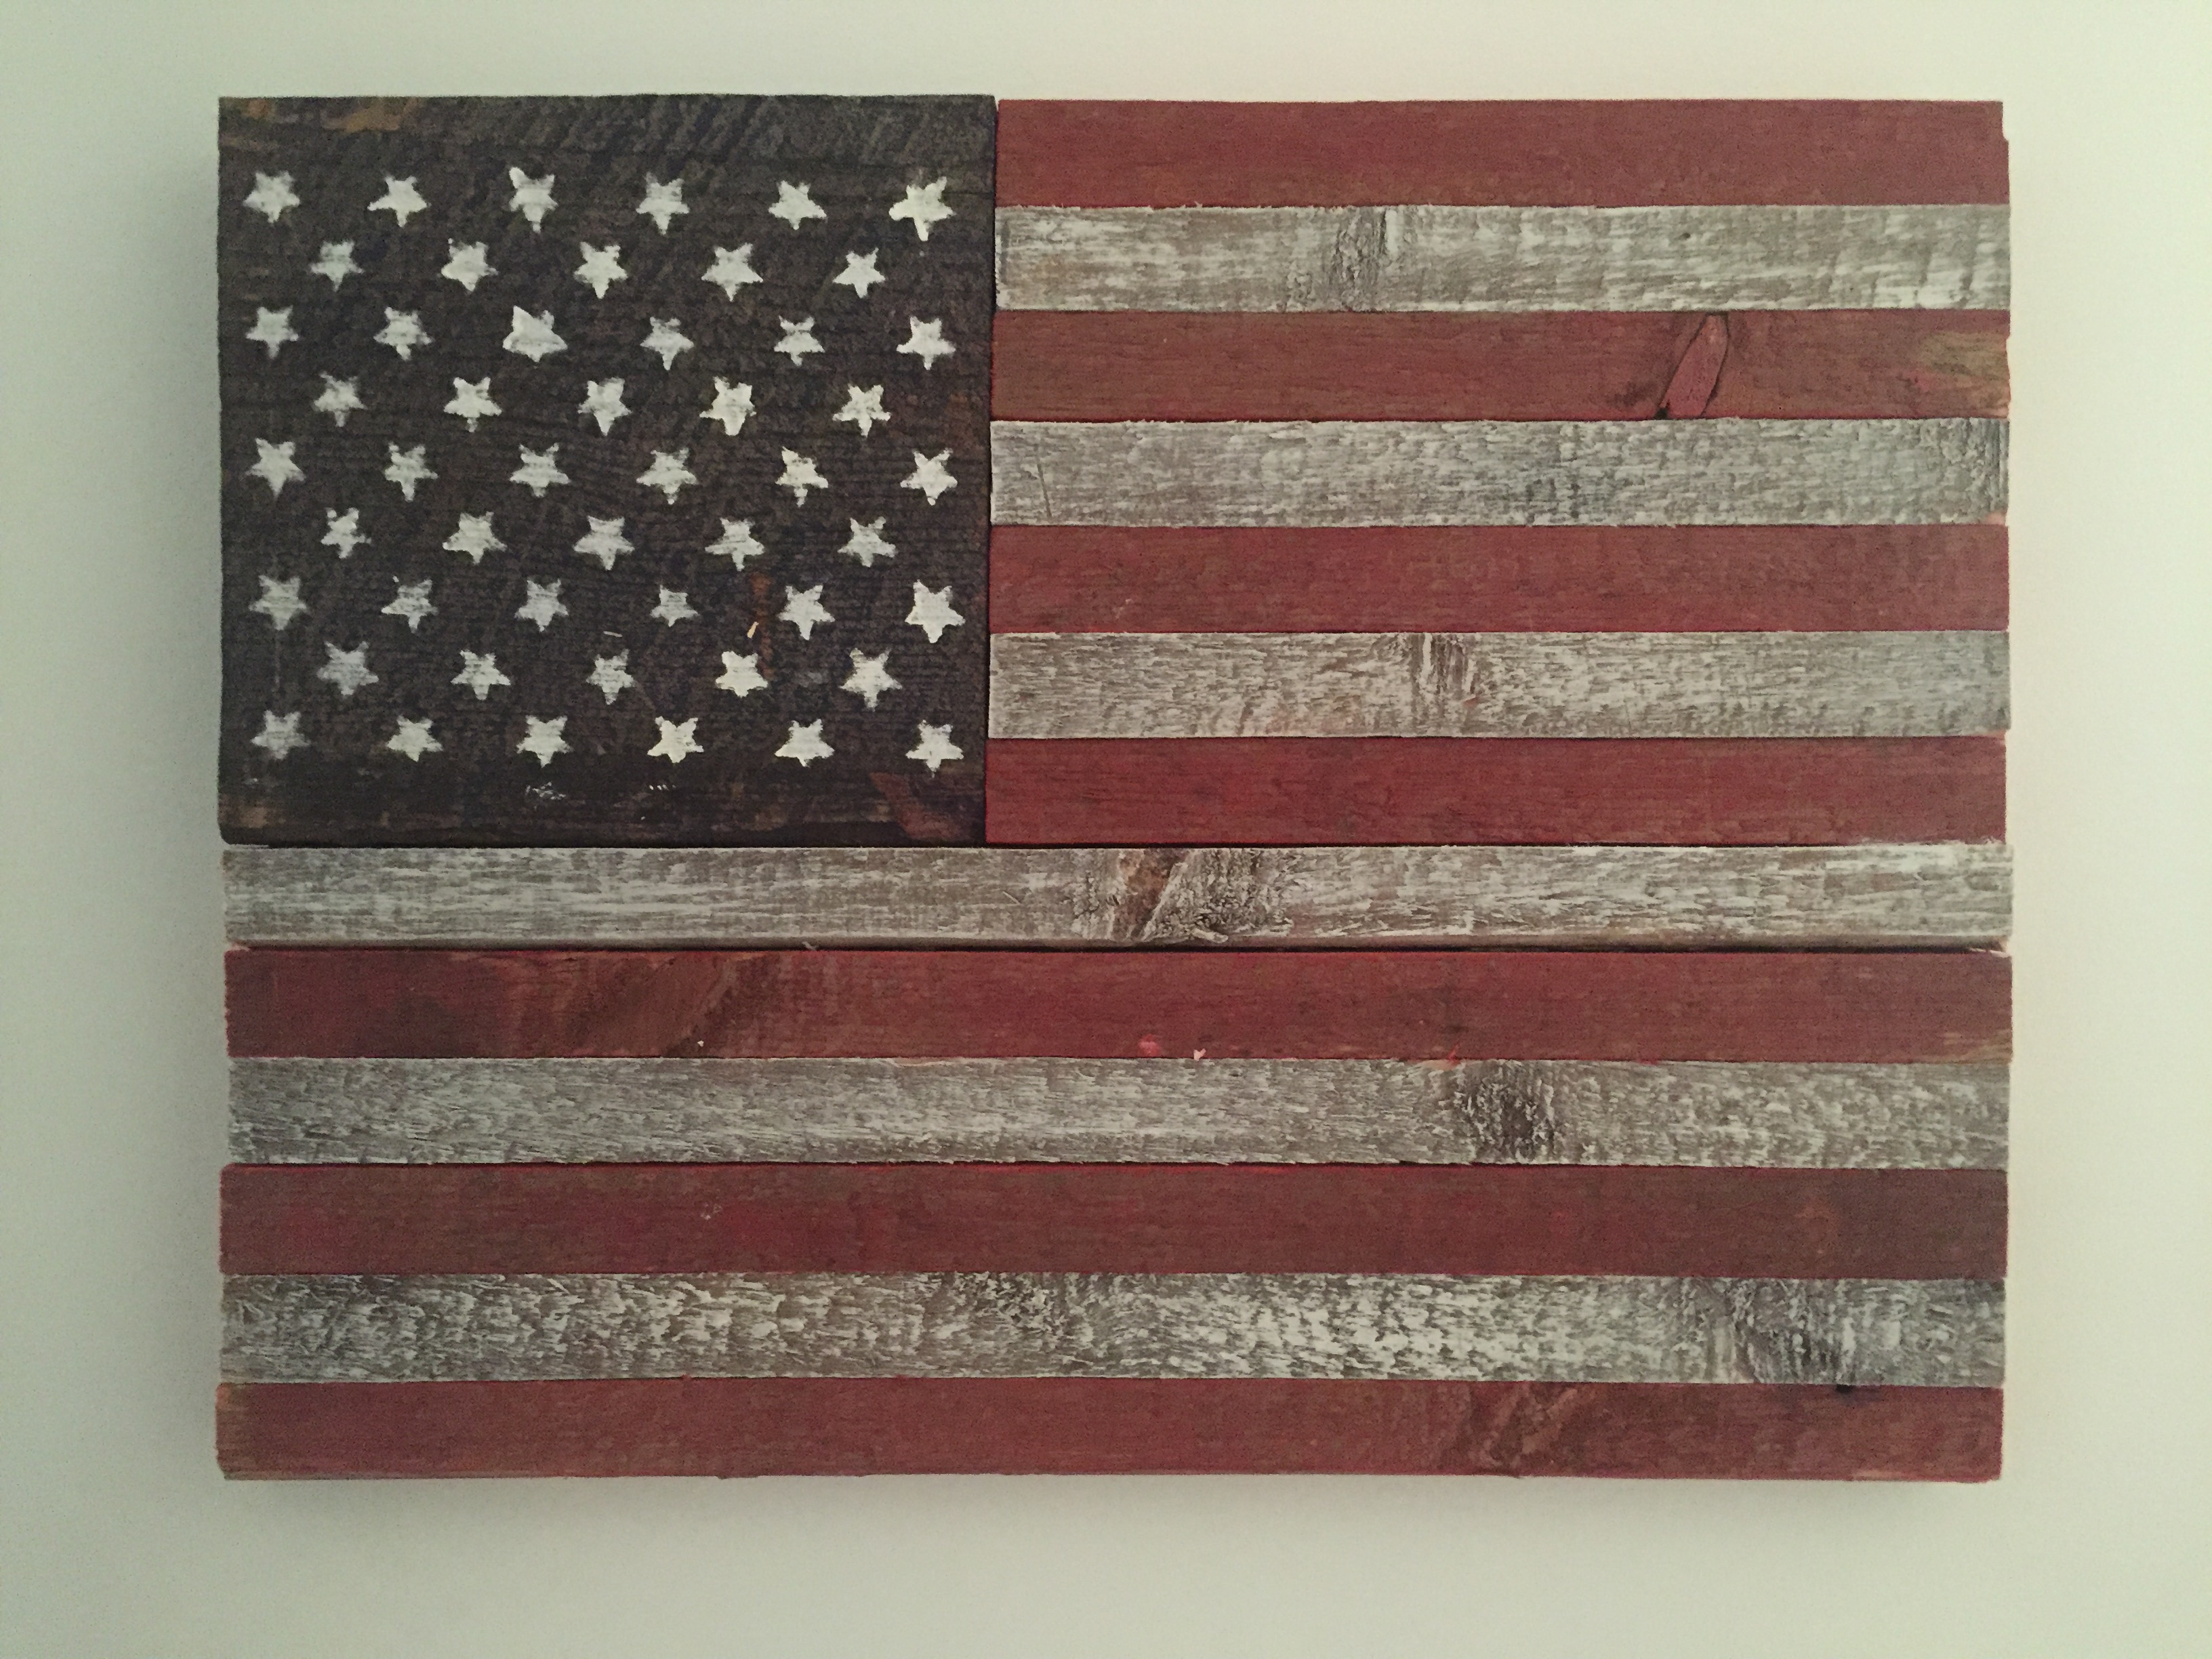 Rustic barn wood painted American flag can be made in any size. Shown here 13.5X17.5